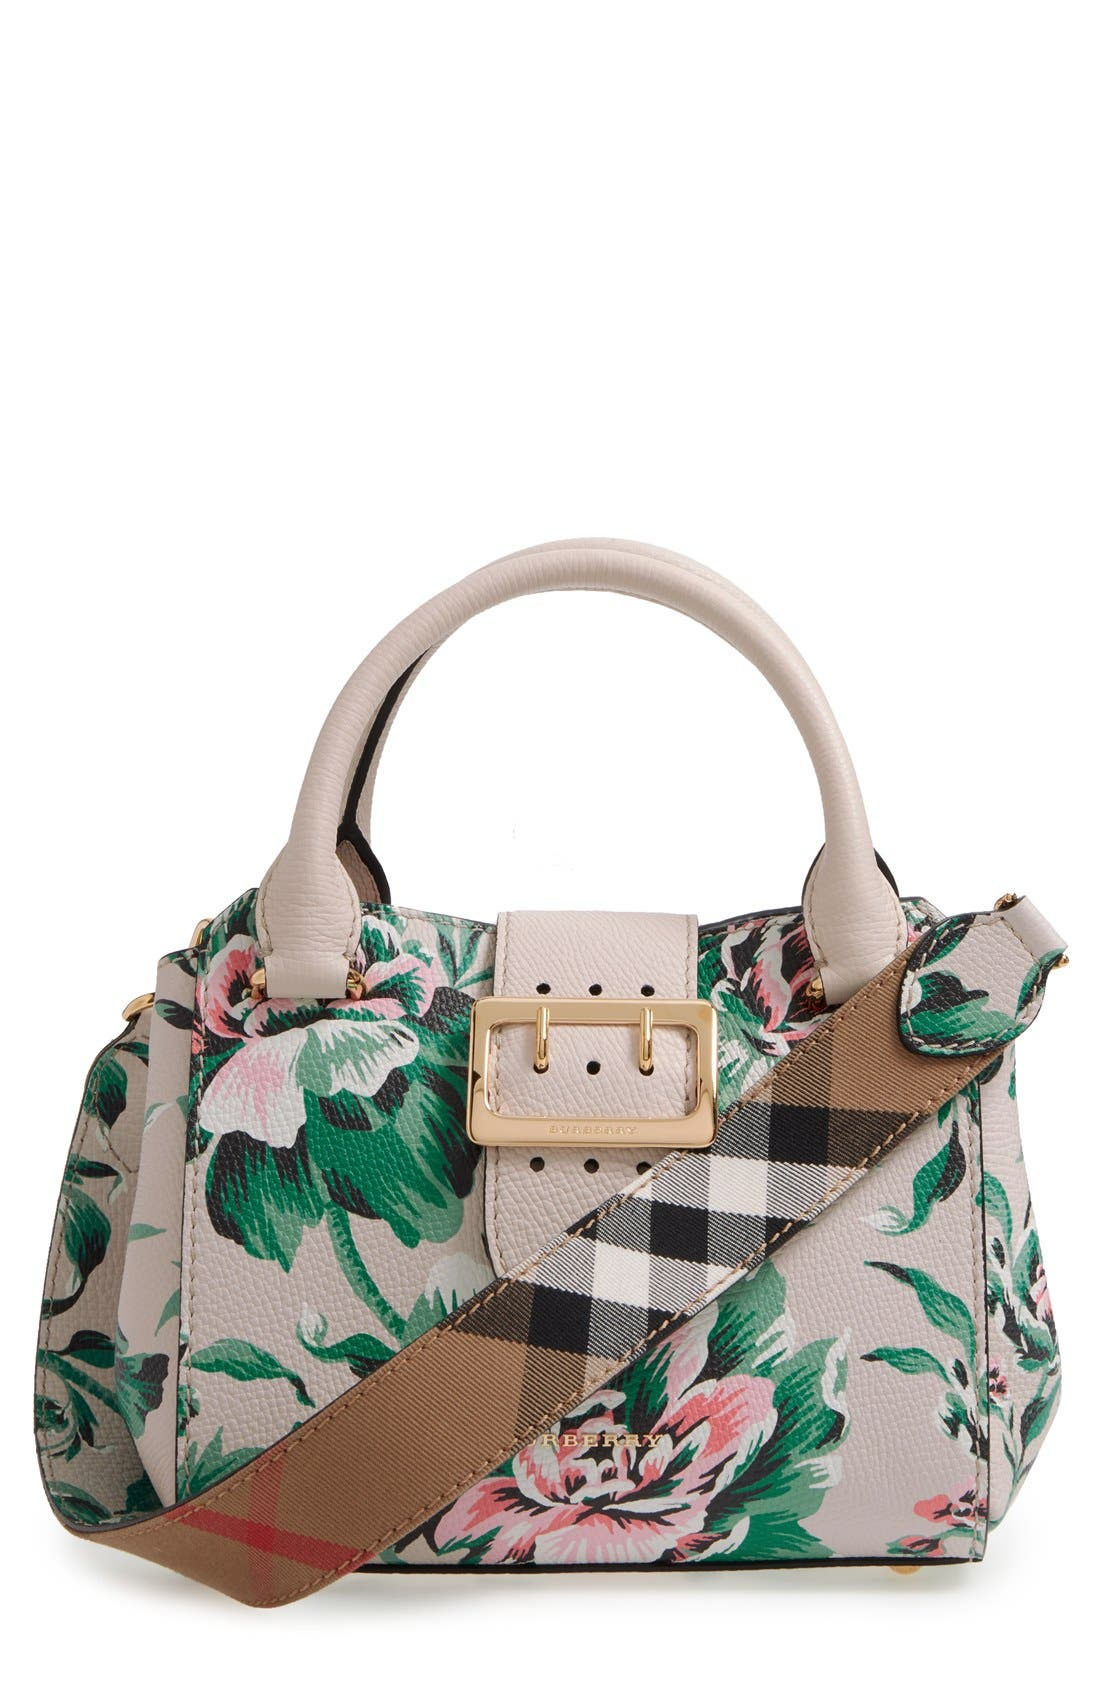 Small Buckle Floral Calfskin Leather Satchel,                         Main,                         color, 321